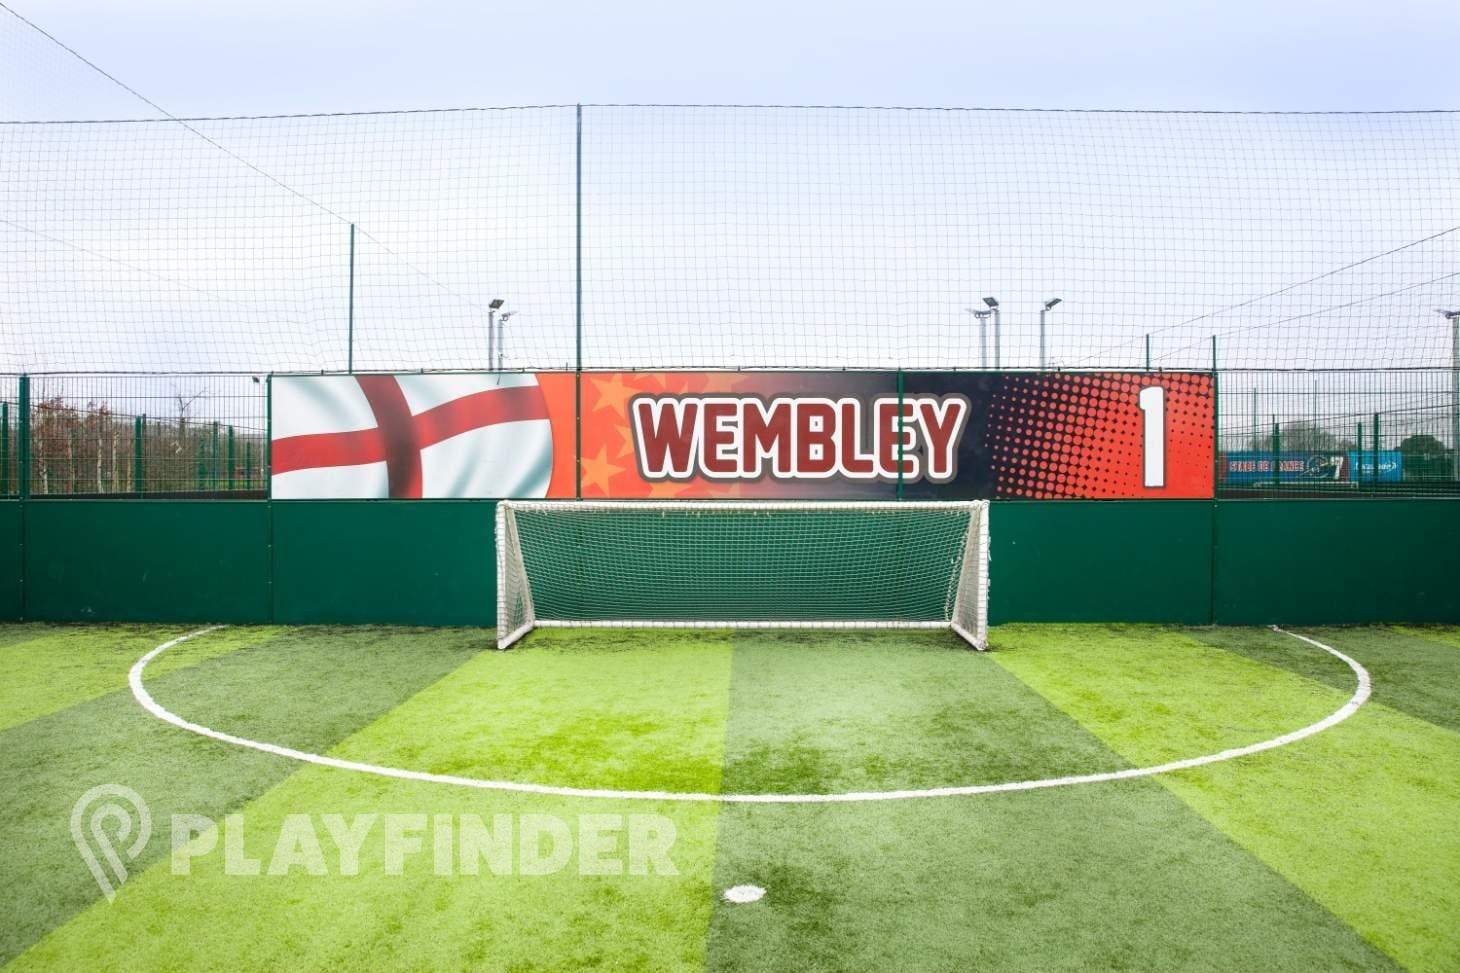 Goals Liverpool South 5 a side | 3G Astroturf football pitch